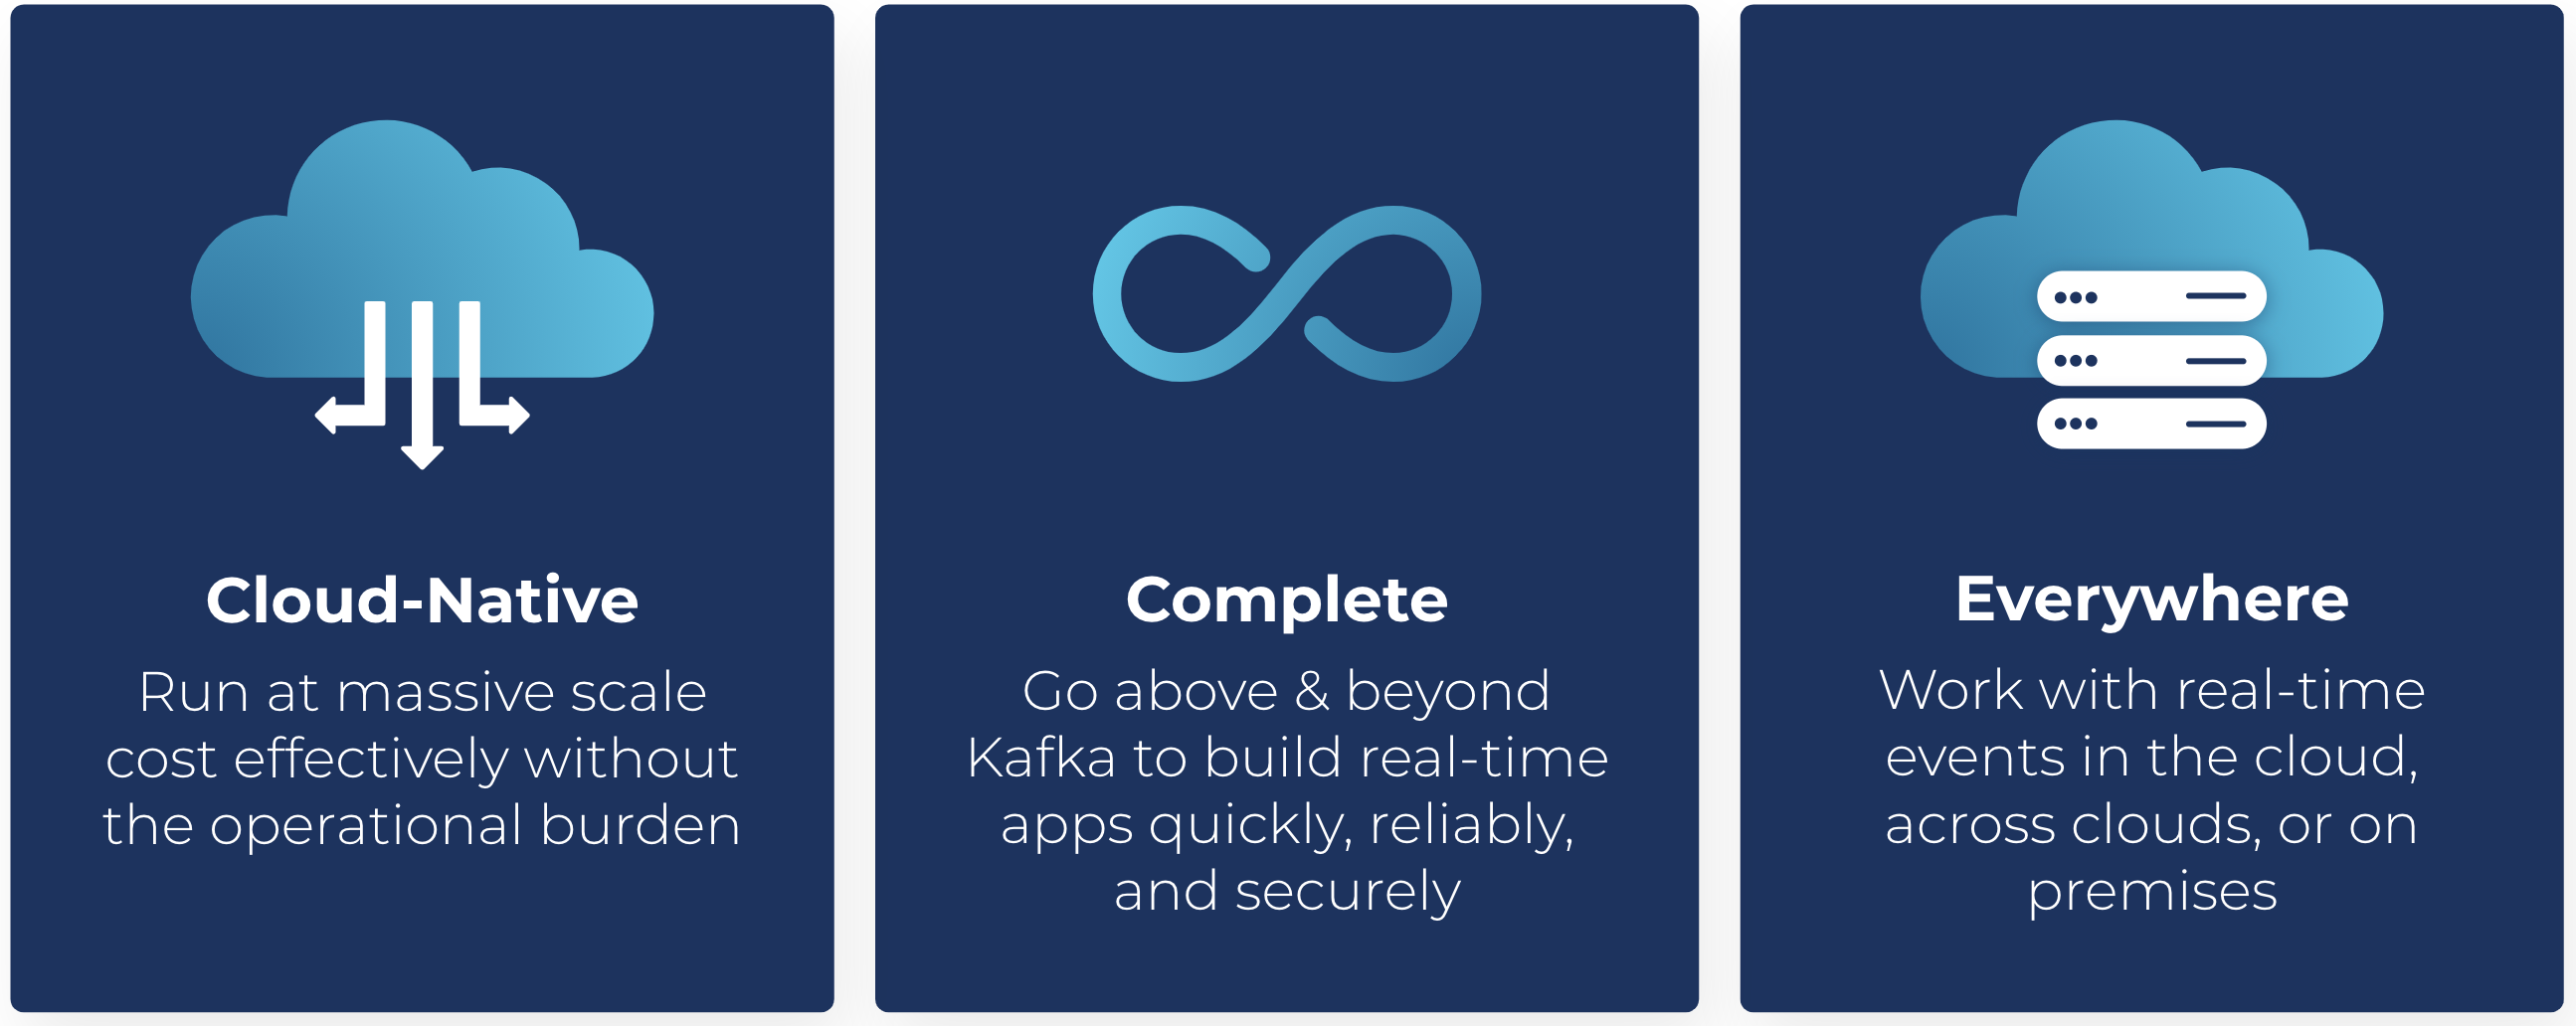 Cloud-native, complete, everywhere